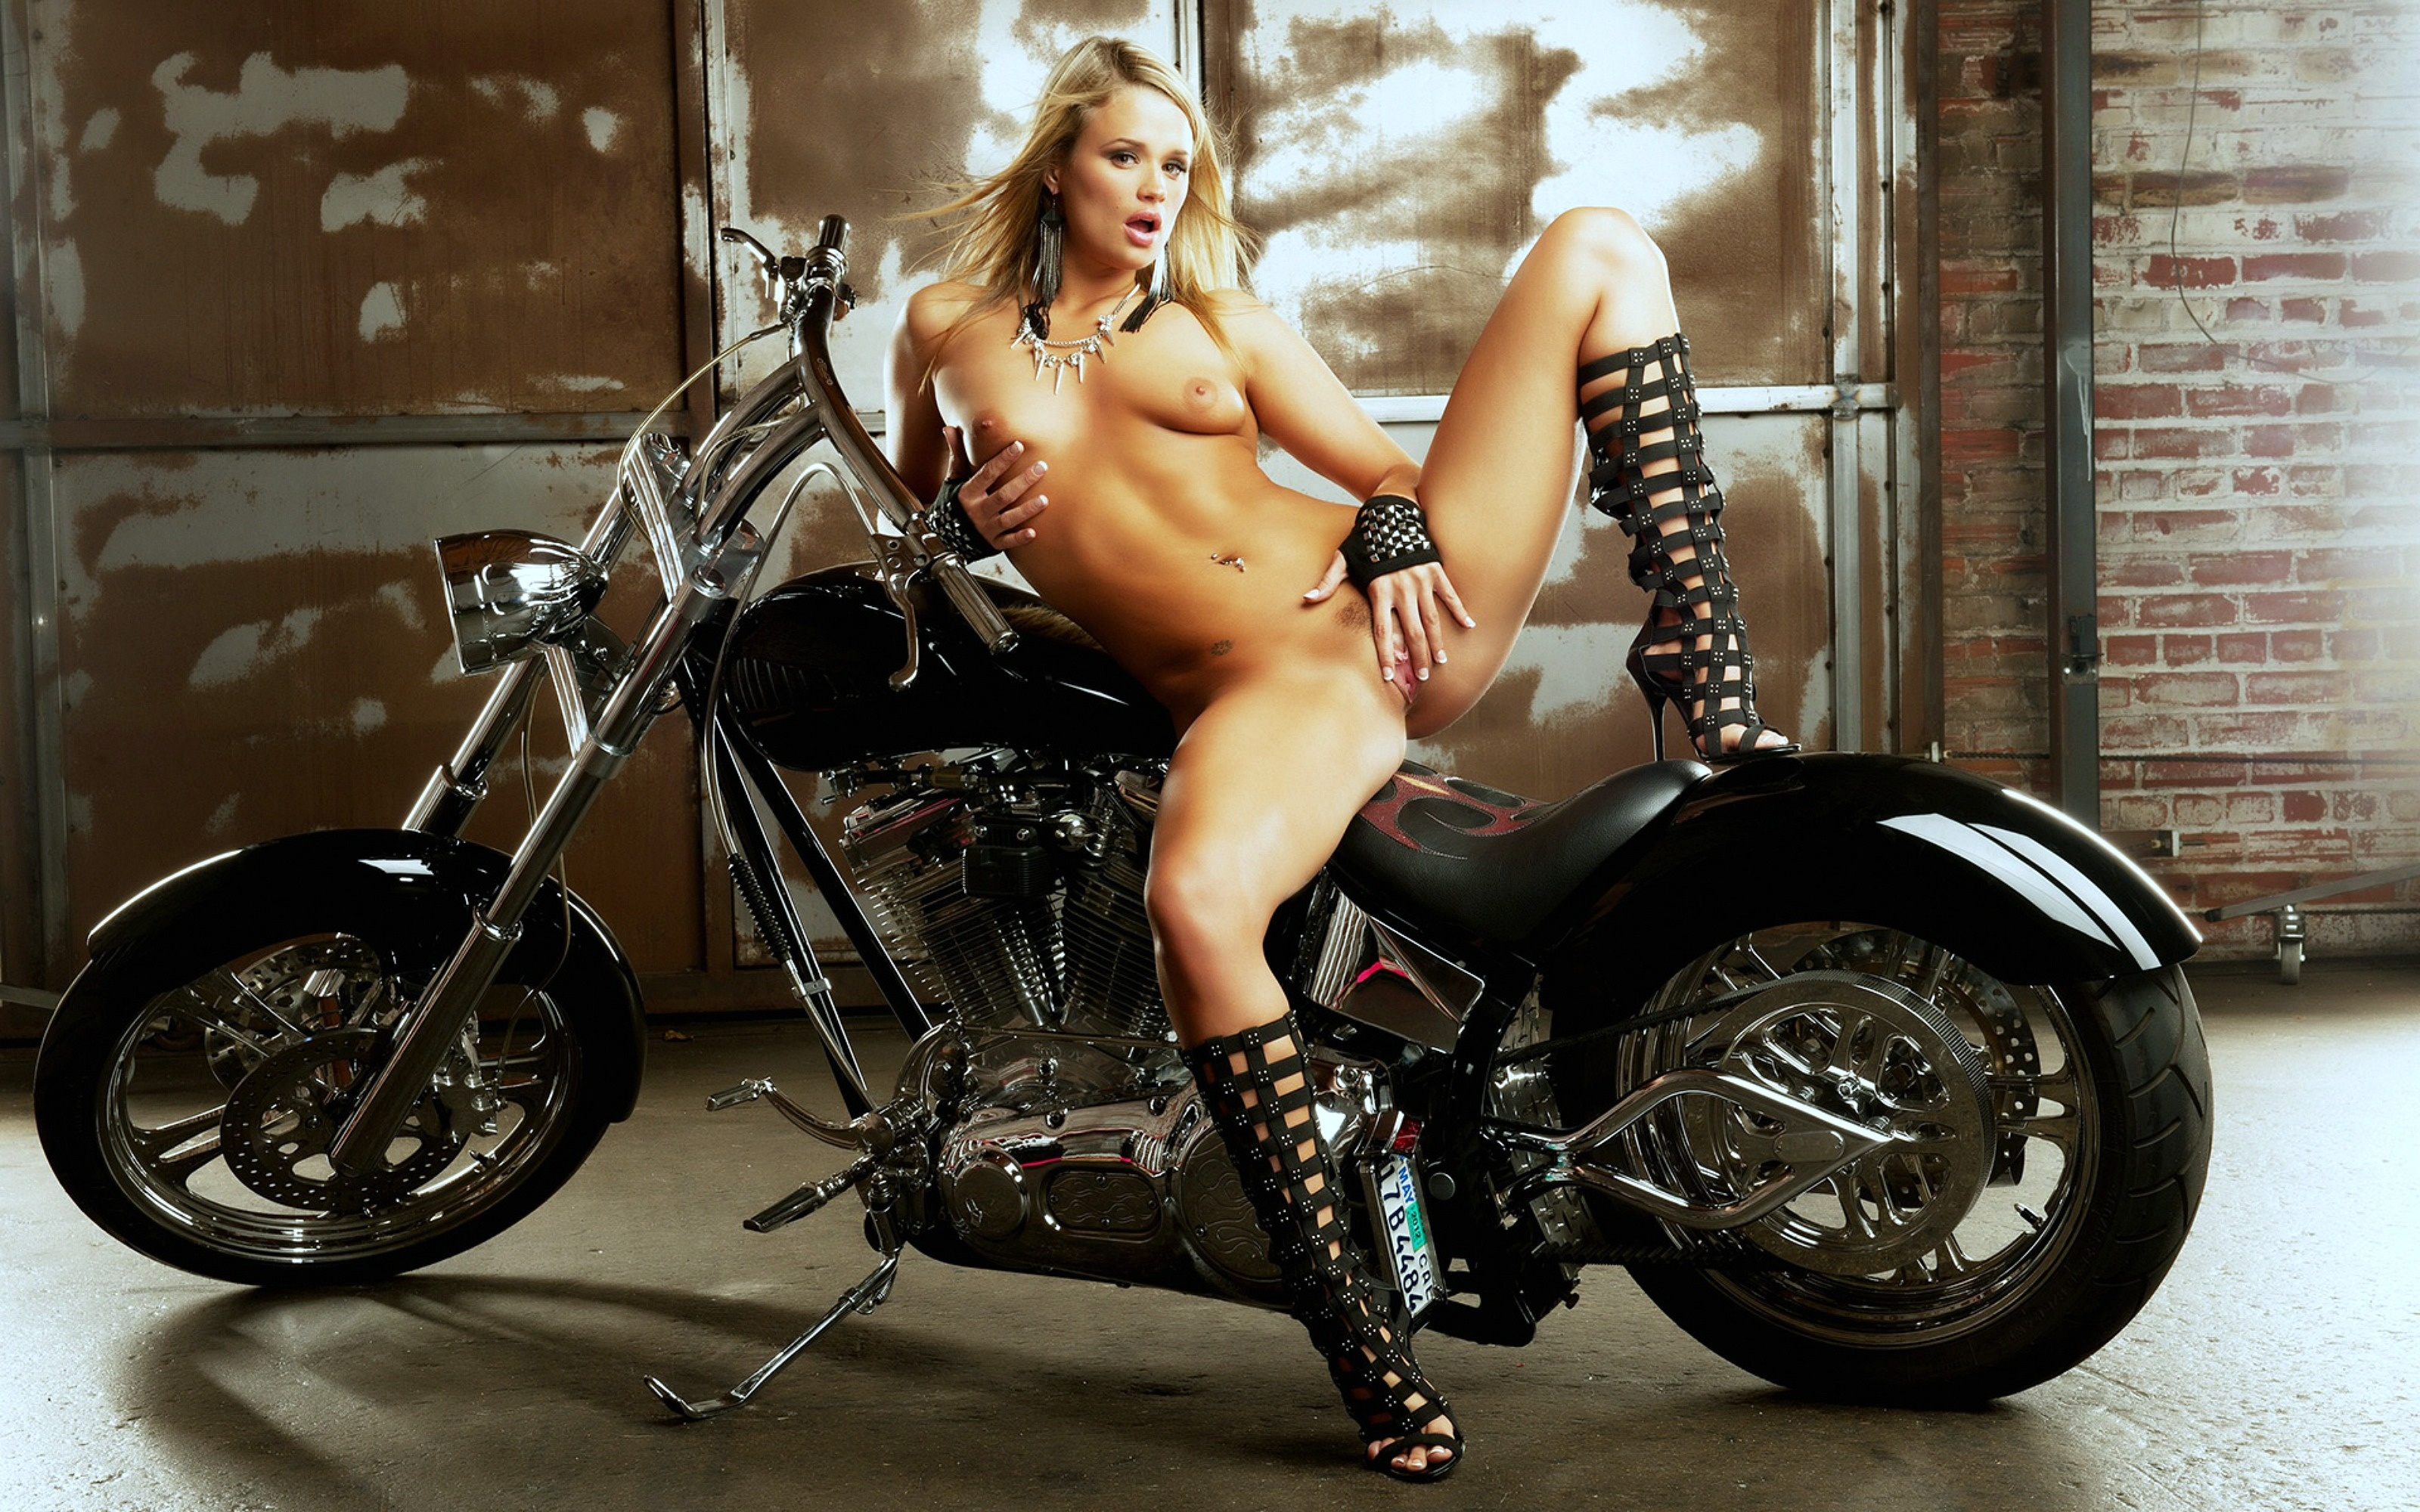 Having sex girls motorcycles naked on